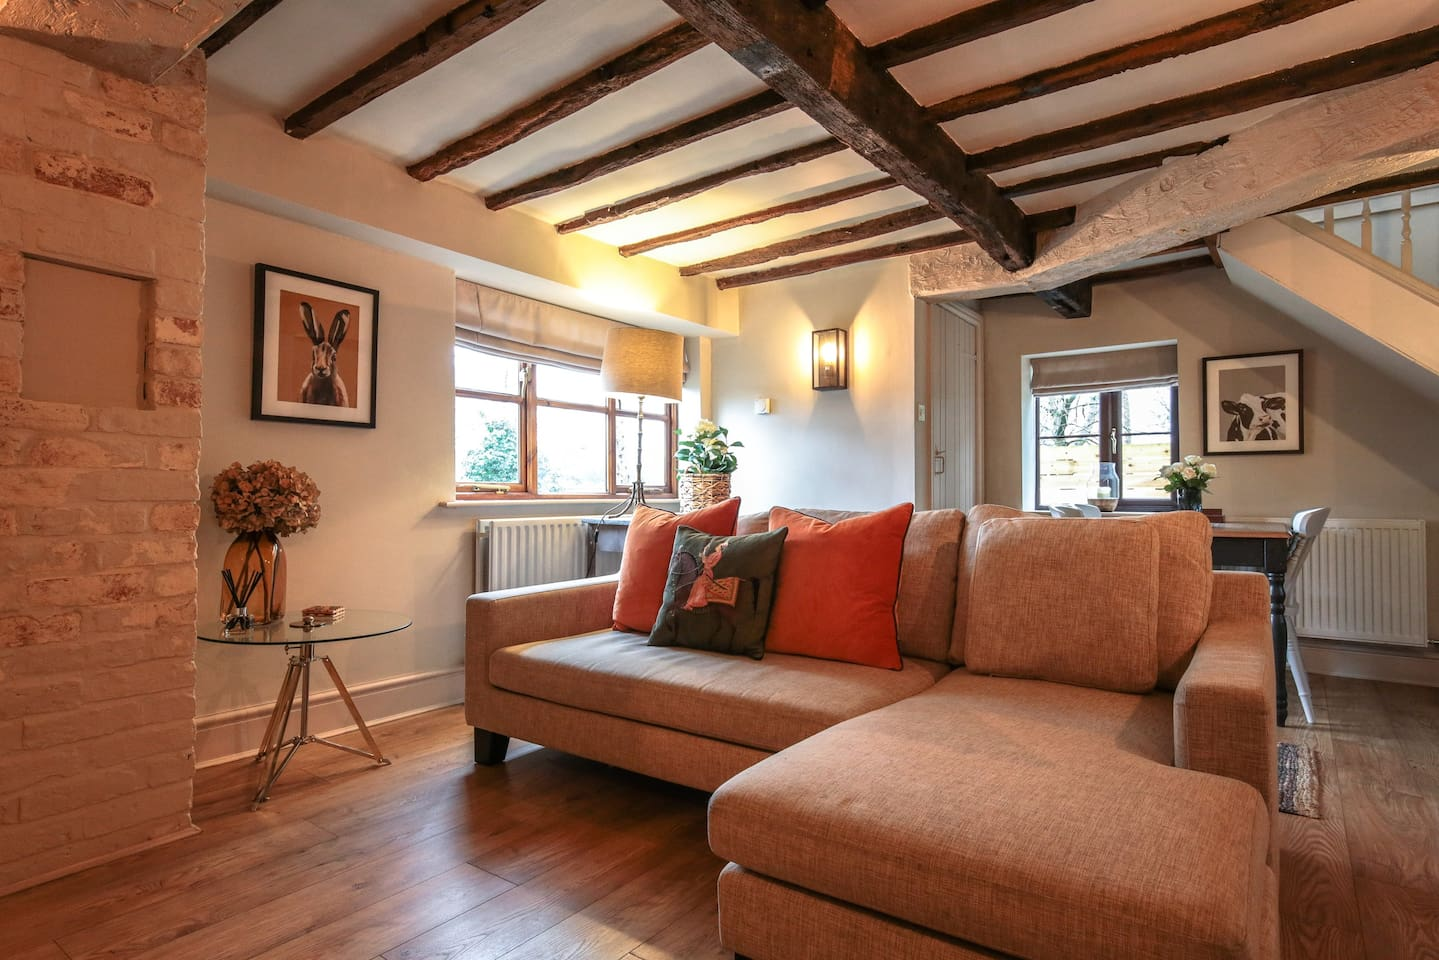 Sitting Room with panelled walls, original beams and soft lighting.